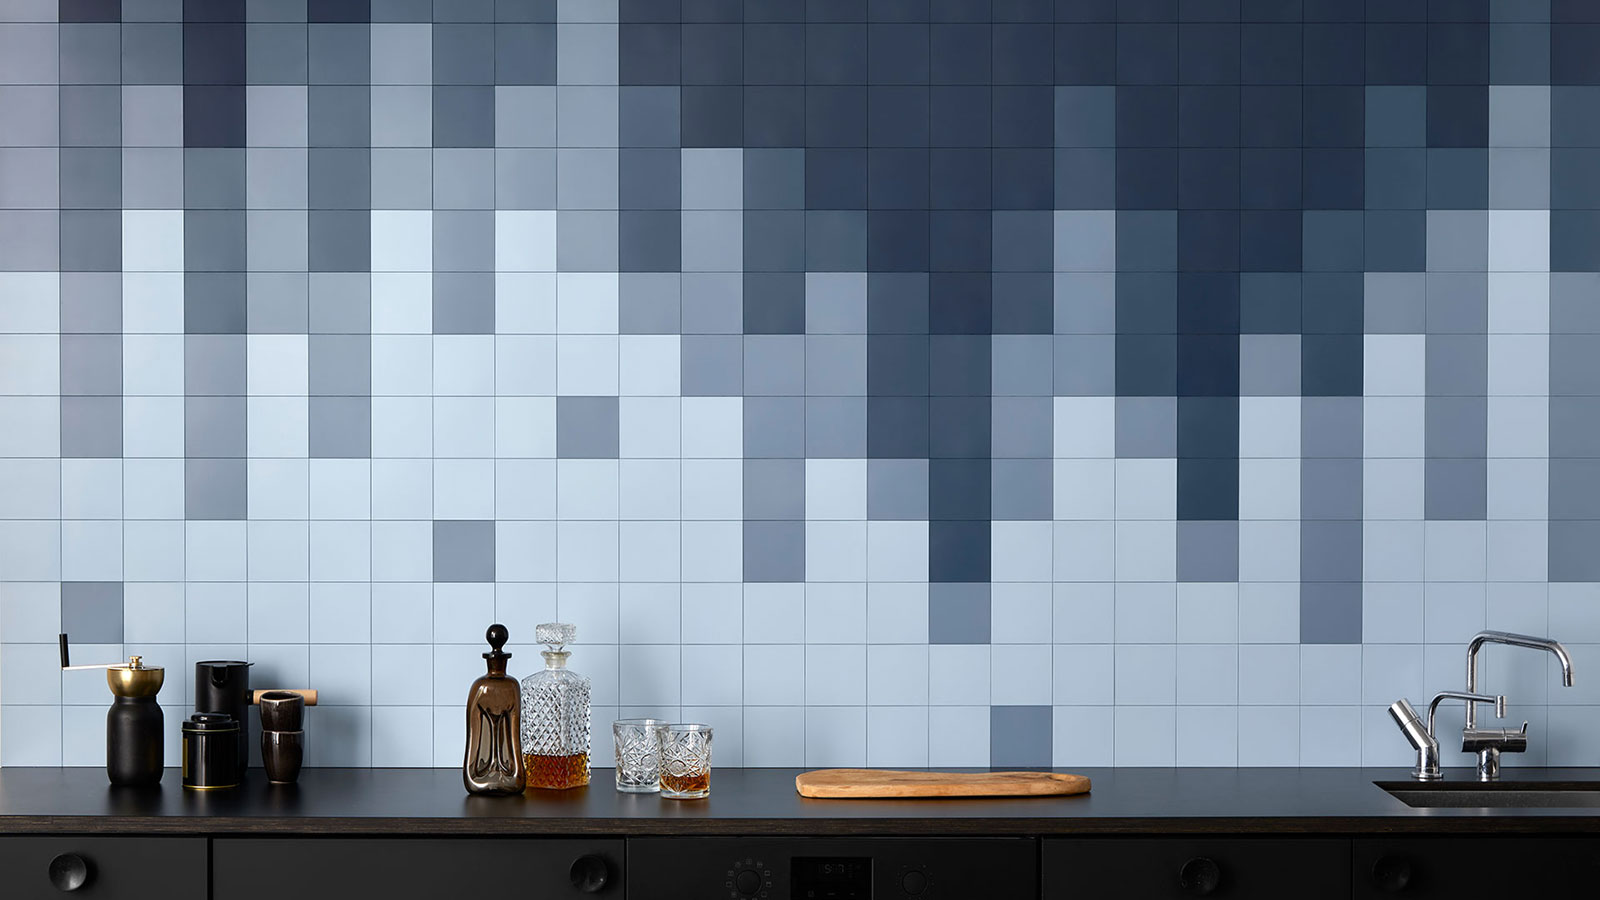 Click'n Tile allows you to change the look of your kitchen and bathroom tiles whenever you want